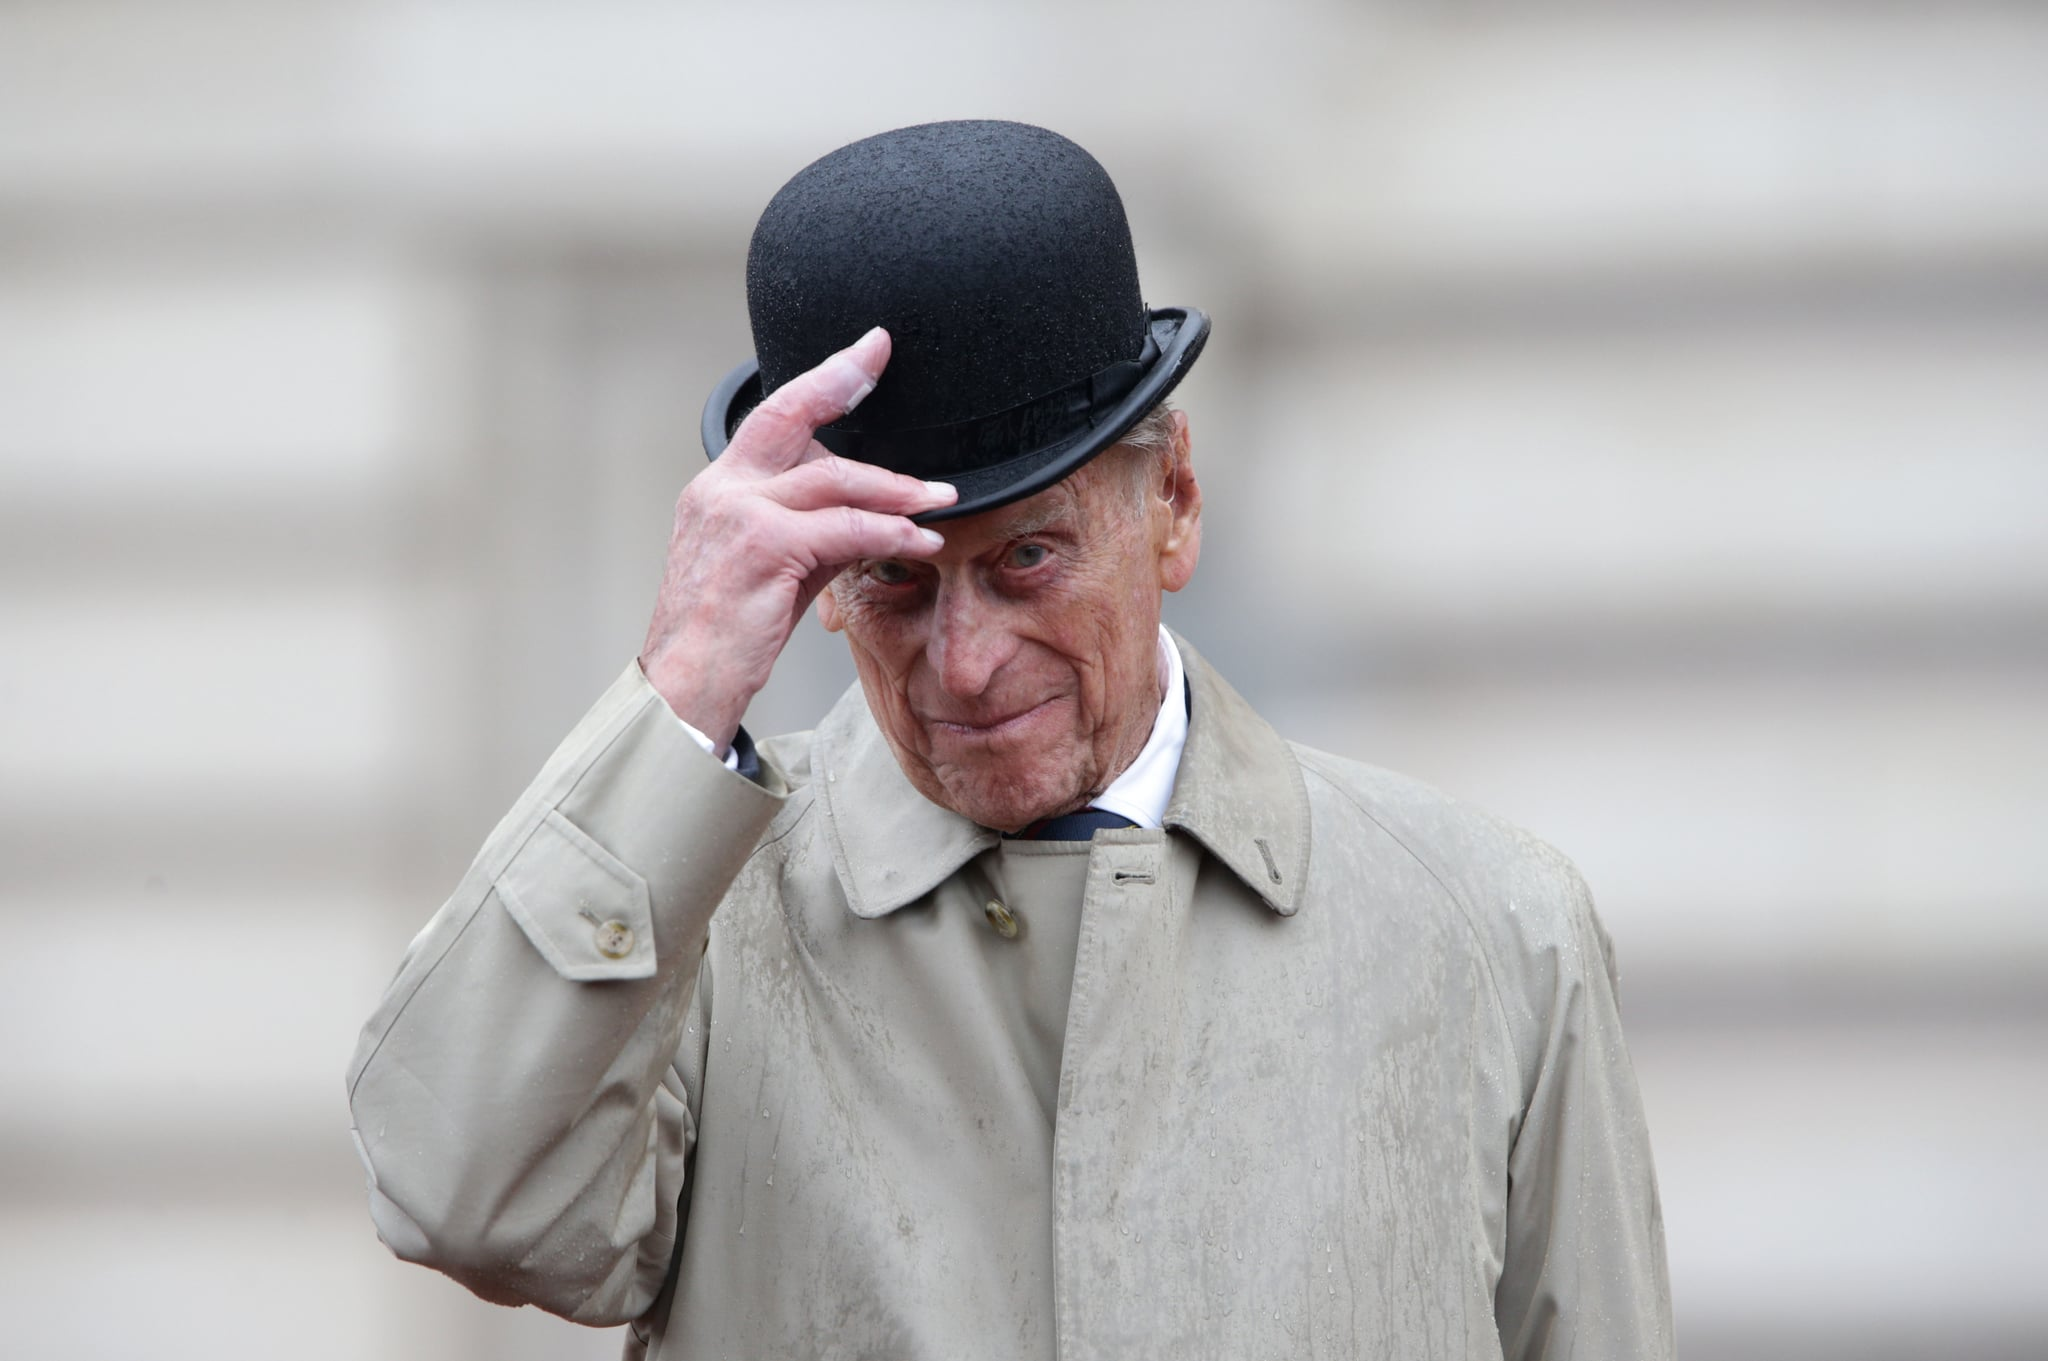 Britain's Prince Philip, Duke of Edinburgh, in his role as Captain General, Royal Marines, attends a Parade to mark the finale of the 1664 Global Challenge on the Buckingham Palace Forecourt in central London on August 2, 2017.  Prince Philip, the 96-year-old husband of Queen Elizabeth II, conducted his final solo public engagement on August 2, 2017, overseeing a military parade in the pouring rain before retiring from a lifetime of service. The Duke of Edinburgh, wearing a raincoat and bowler hat, met members of the Royal Marines and veterans -- many younger than him -- before taking the salute in the forecourt of Buckingham Palace. / AFP PHOTO / POOL / Yui Mok        (Photo credit should read YUI MOK/AFP/Getty Images)